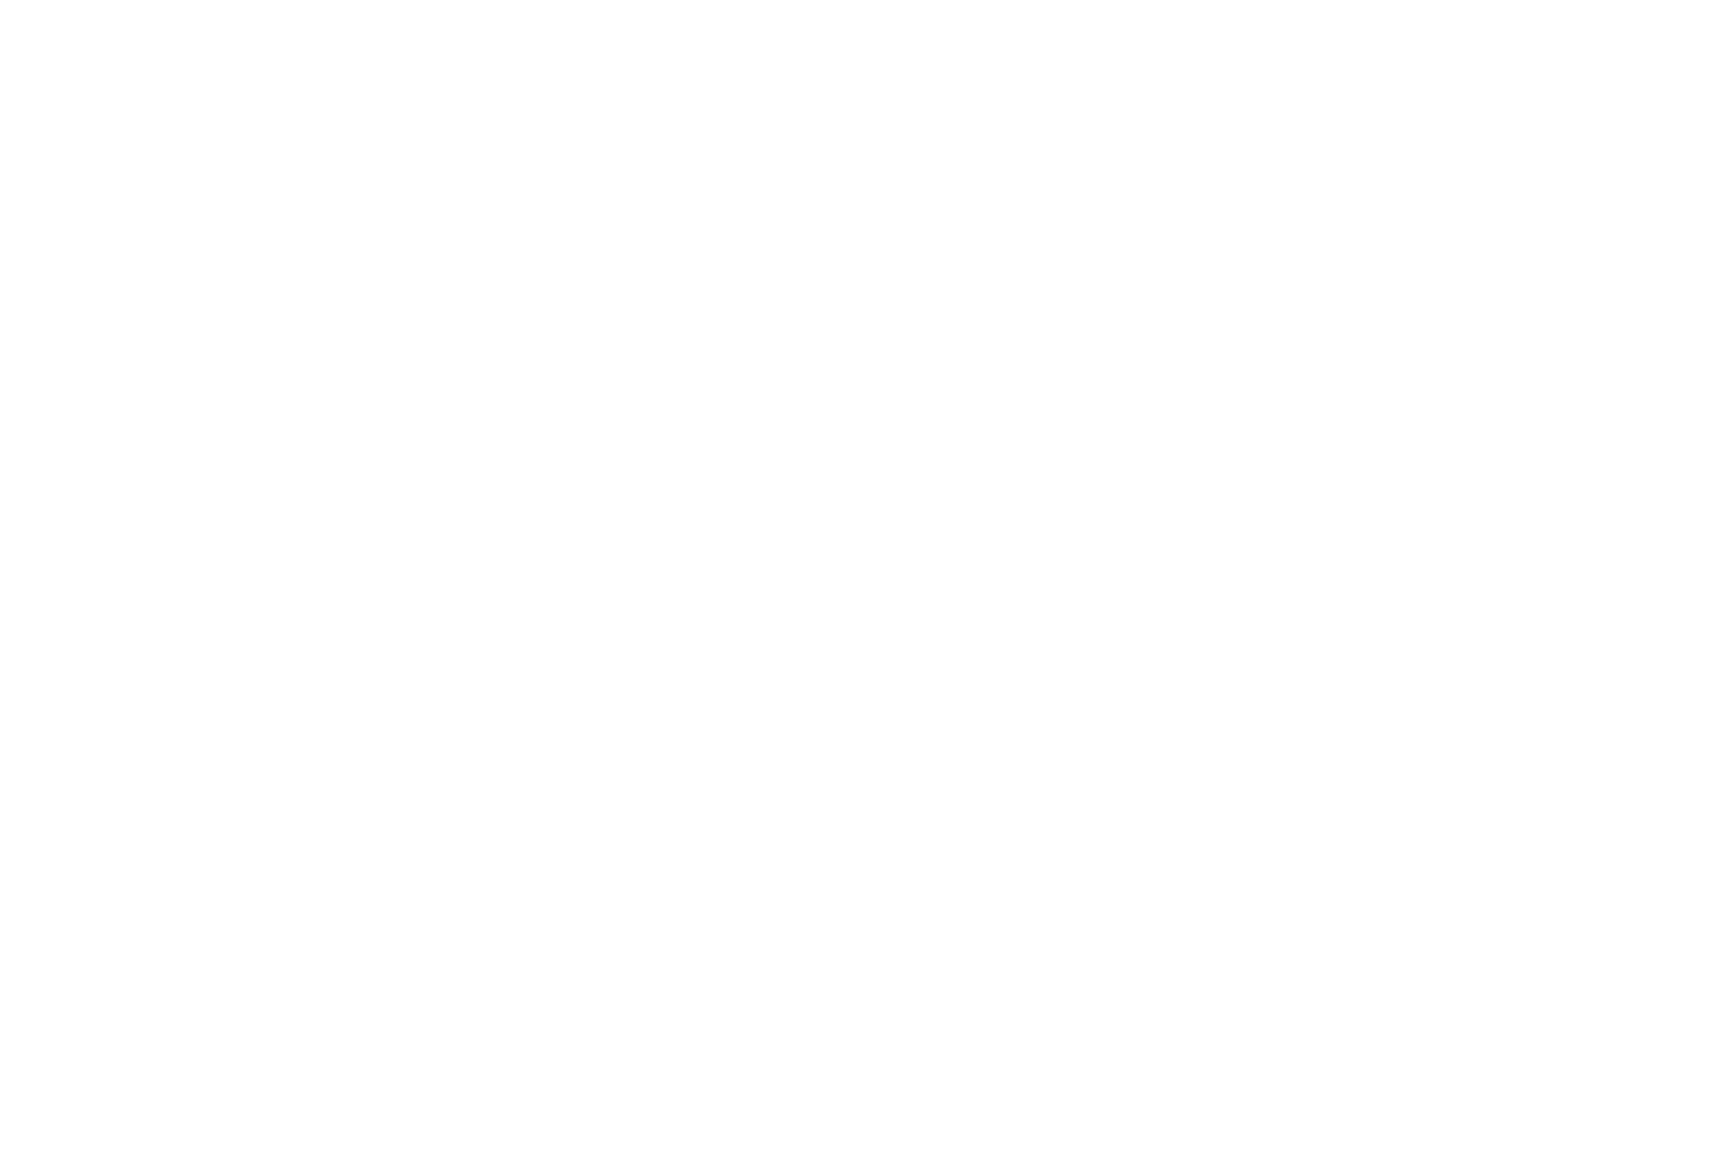 Forest City Film Festival - Between October 25th - 28thExact dates and location TBA